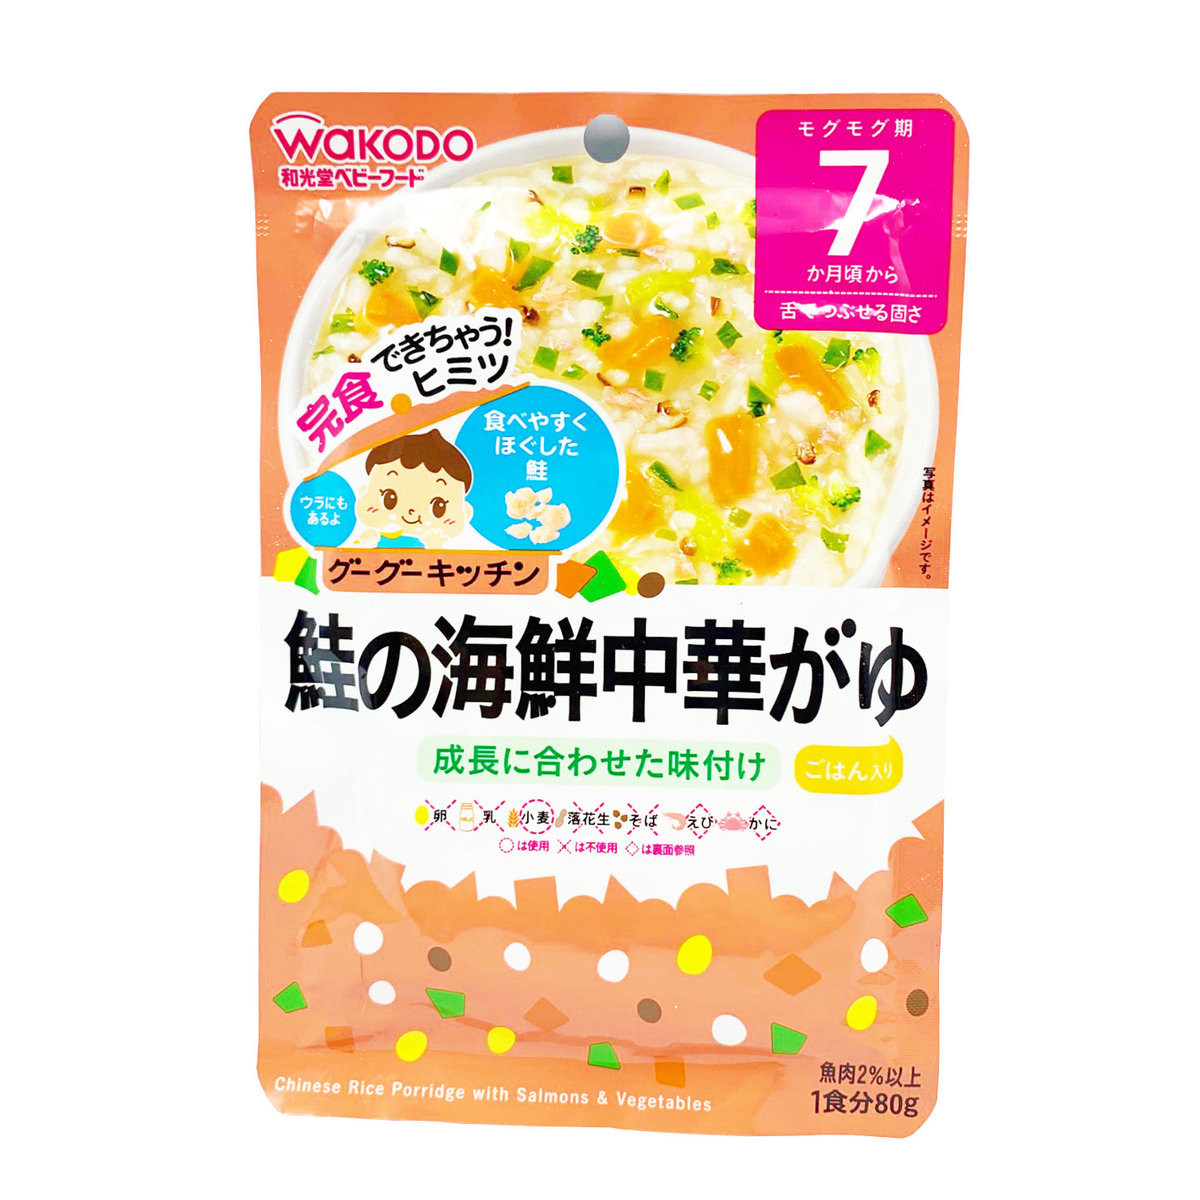 Chinese Rice Porridge with Salmons & Vegetables #From 7 months 80g (Best Before: 2021.02) (181596)